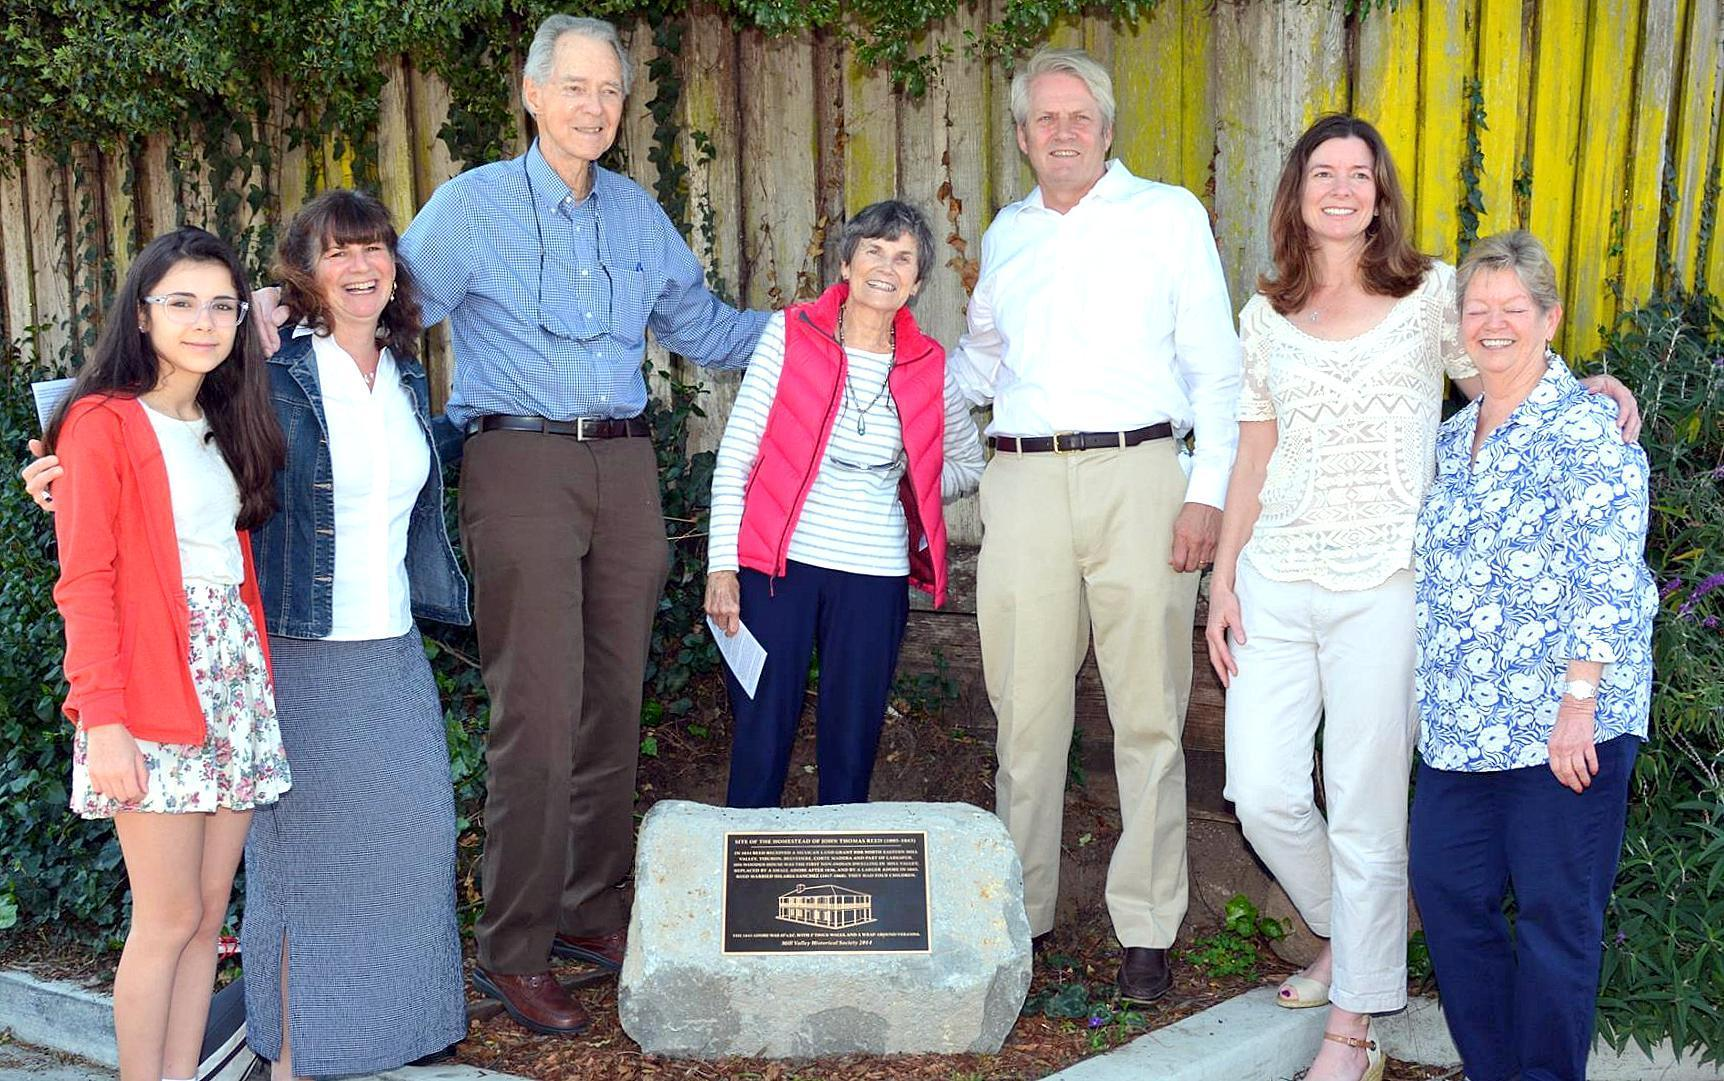 Mill Valley Historical Society Board of Directors and Members, descendants of John Thomas Reed, and City of Mill Valley dignitaries gathered for the dedication of this interpretive plaque which marks the site of the adobe home of John Reed and his family. [click to enlarge ]